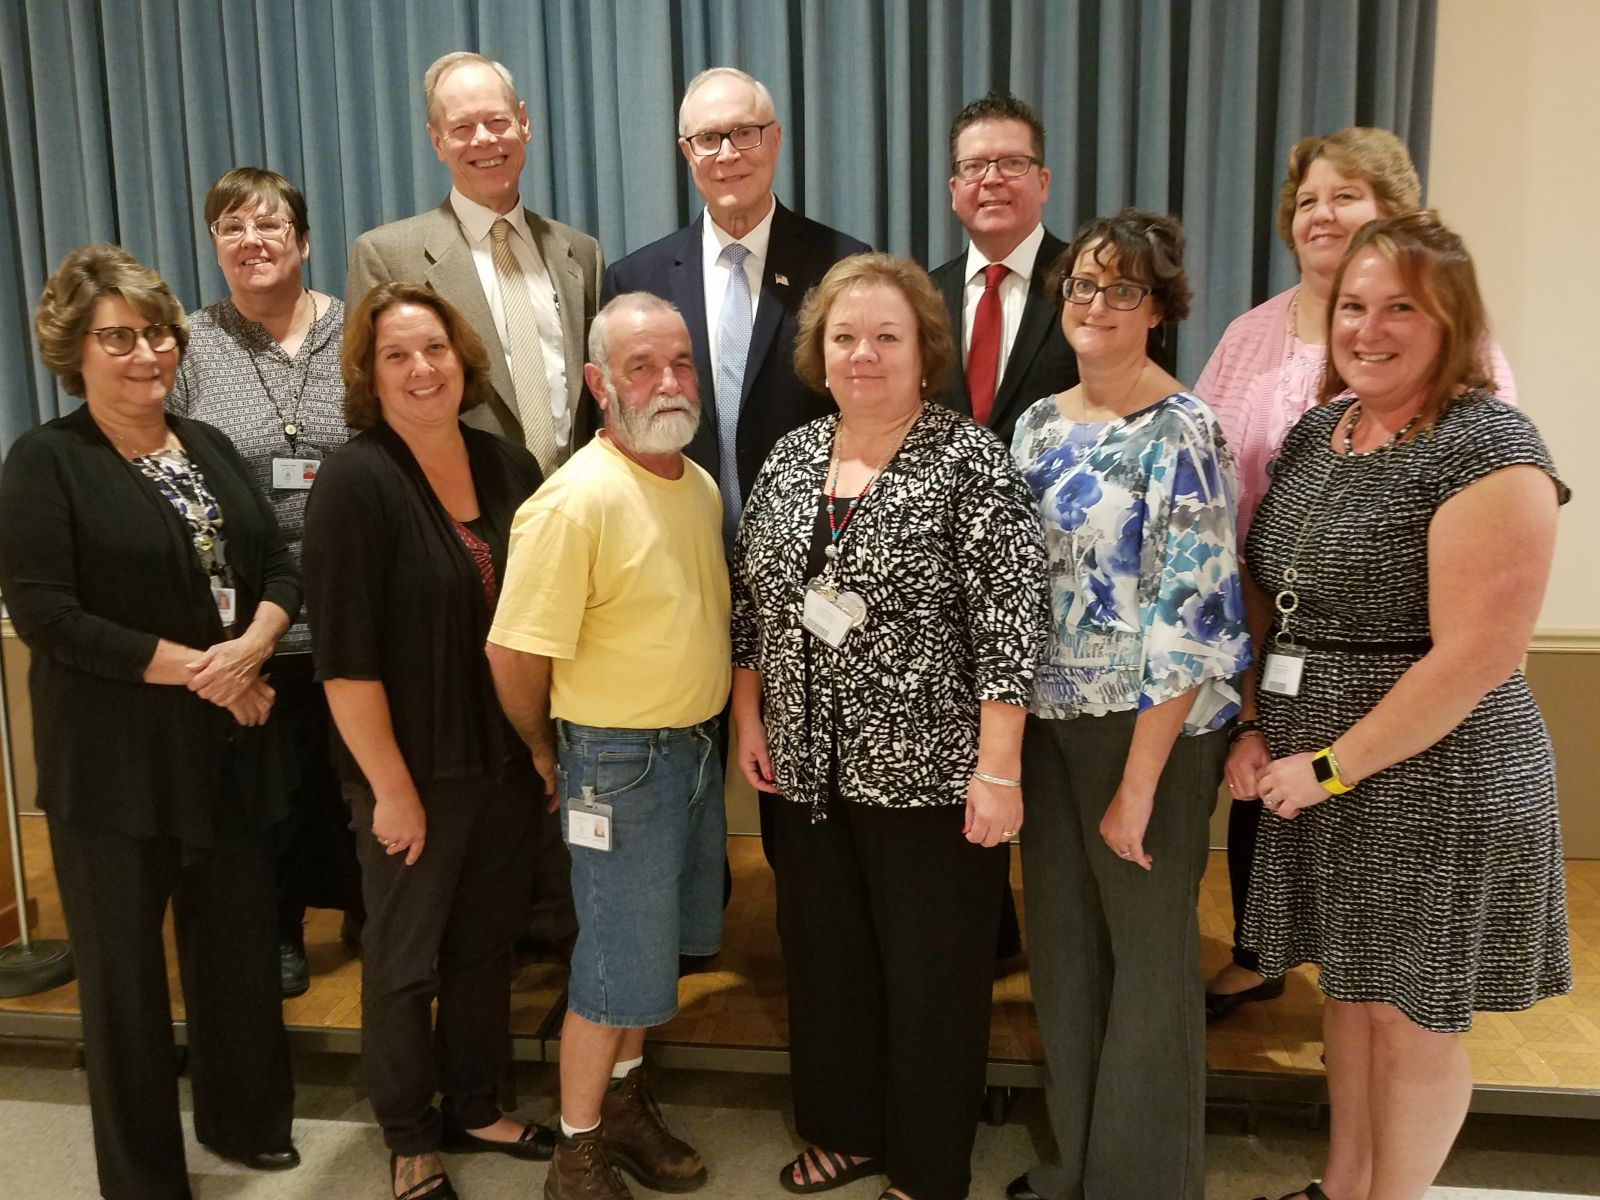 20 Years of Service Pictured above (left to right): top row- Julie Mentzer, Commissioner Bob Ziobrowski, Commissioner Bob Thomas, Commissioner Chairman Dave Keller, Karen Nye; bottom row- Cindy Kean, Minnie Goshorn, Dan McClure, Emily Eberly, Danielle Campbell, Angela Mackley  Missing from photo: Tammy Duncan, Mark Gilliam, David King, Jodi Martin, Todd McIntire, Donna Poe, Sharon Winter.